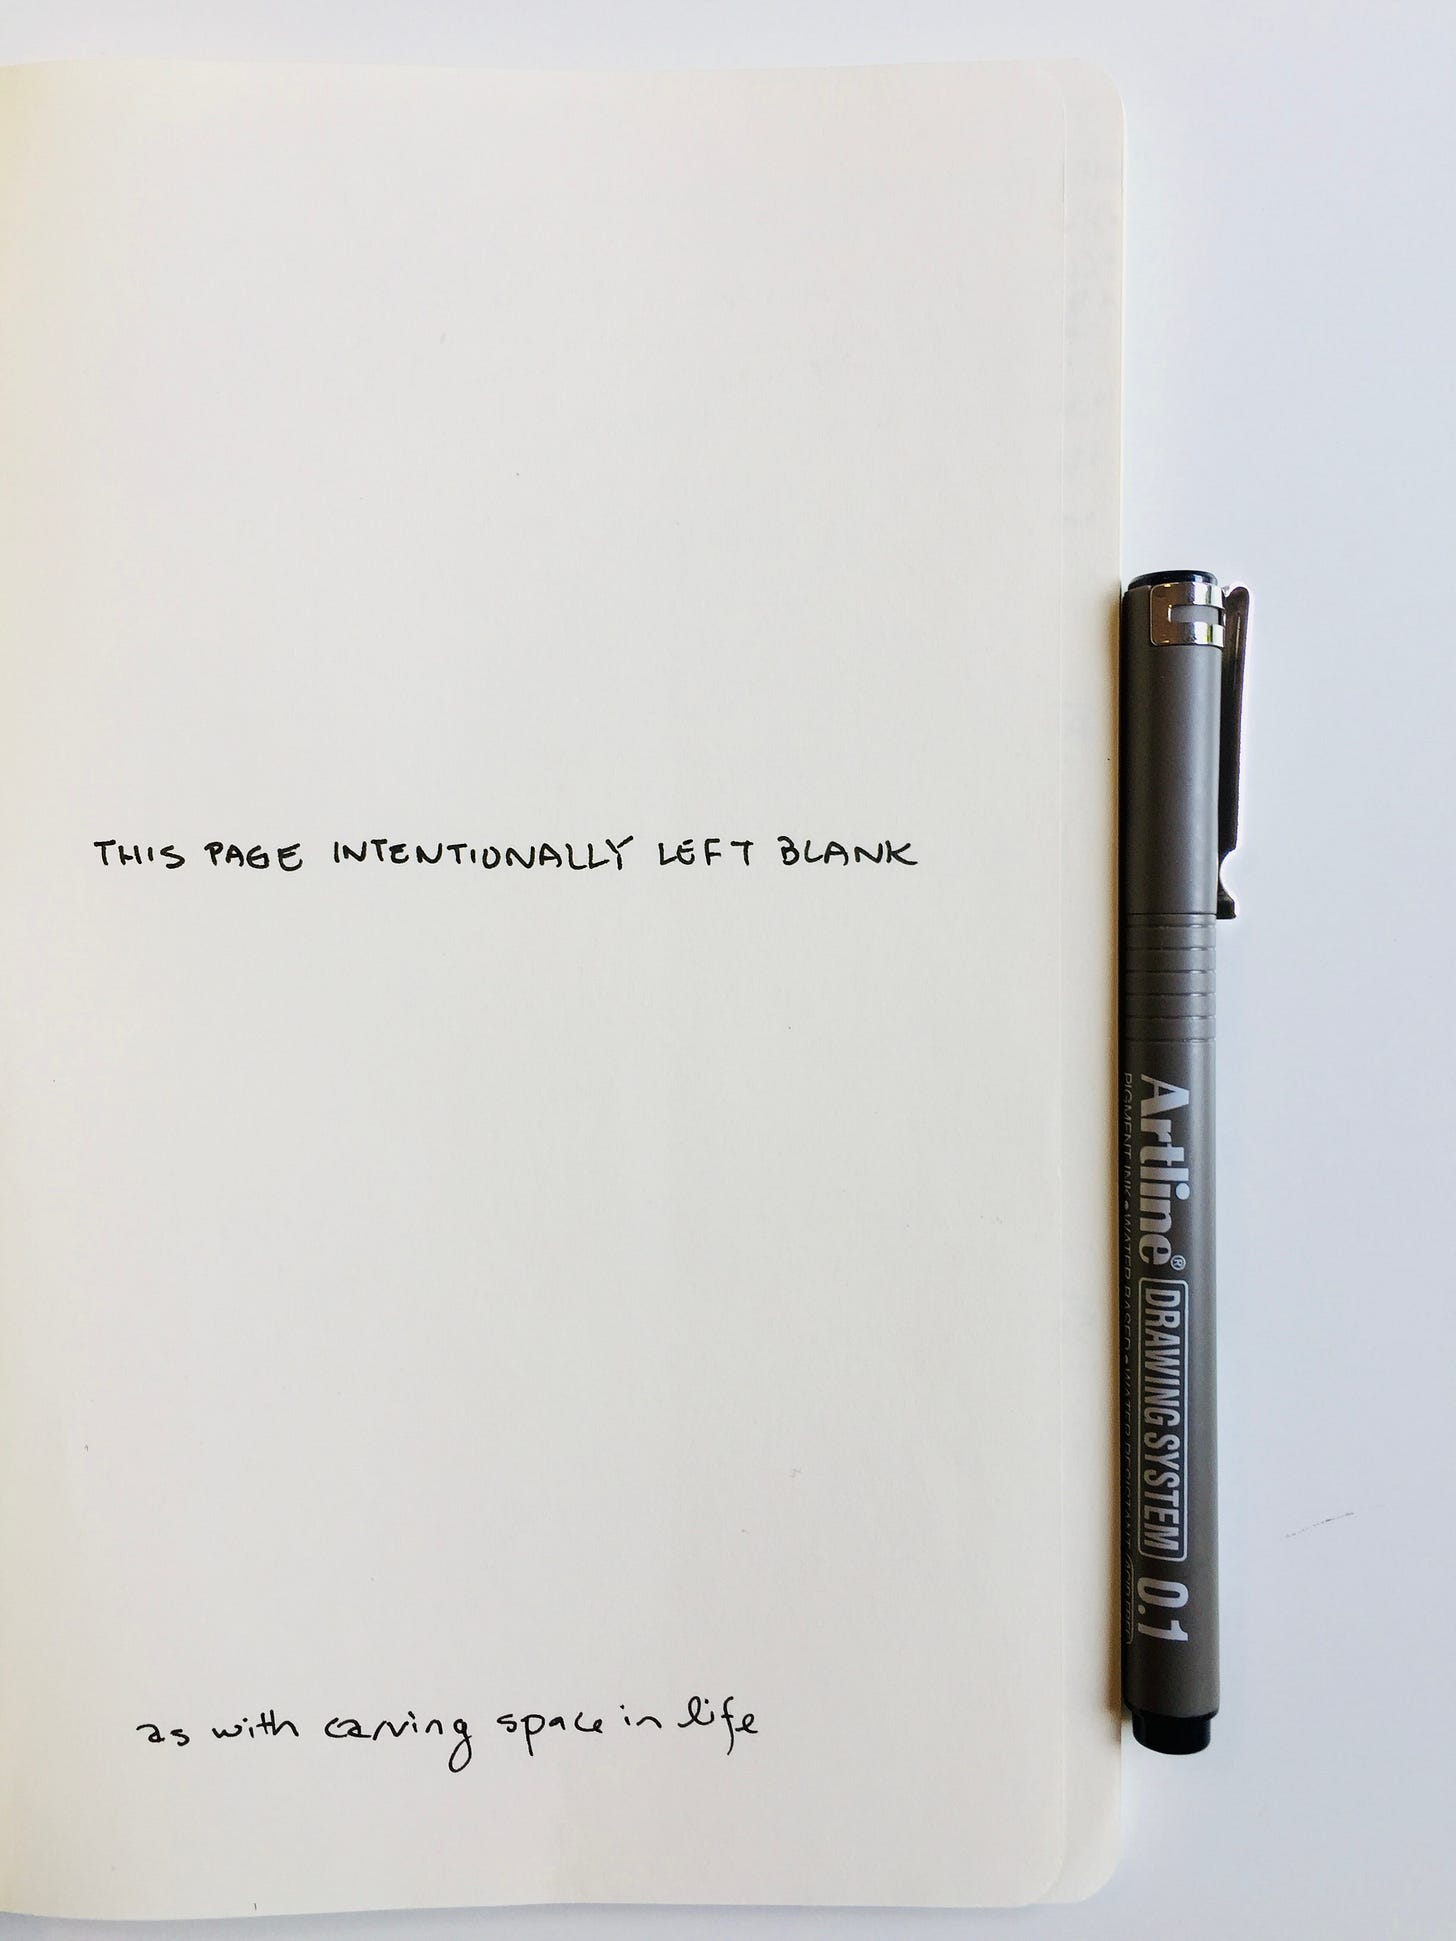 Photo of a page of a notebook with the handwritten words: This page intentionally left blank. As with carving space in life